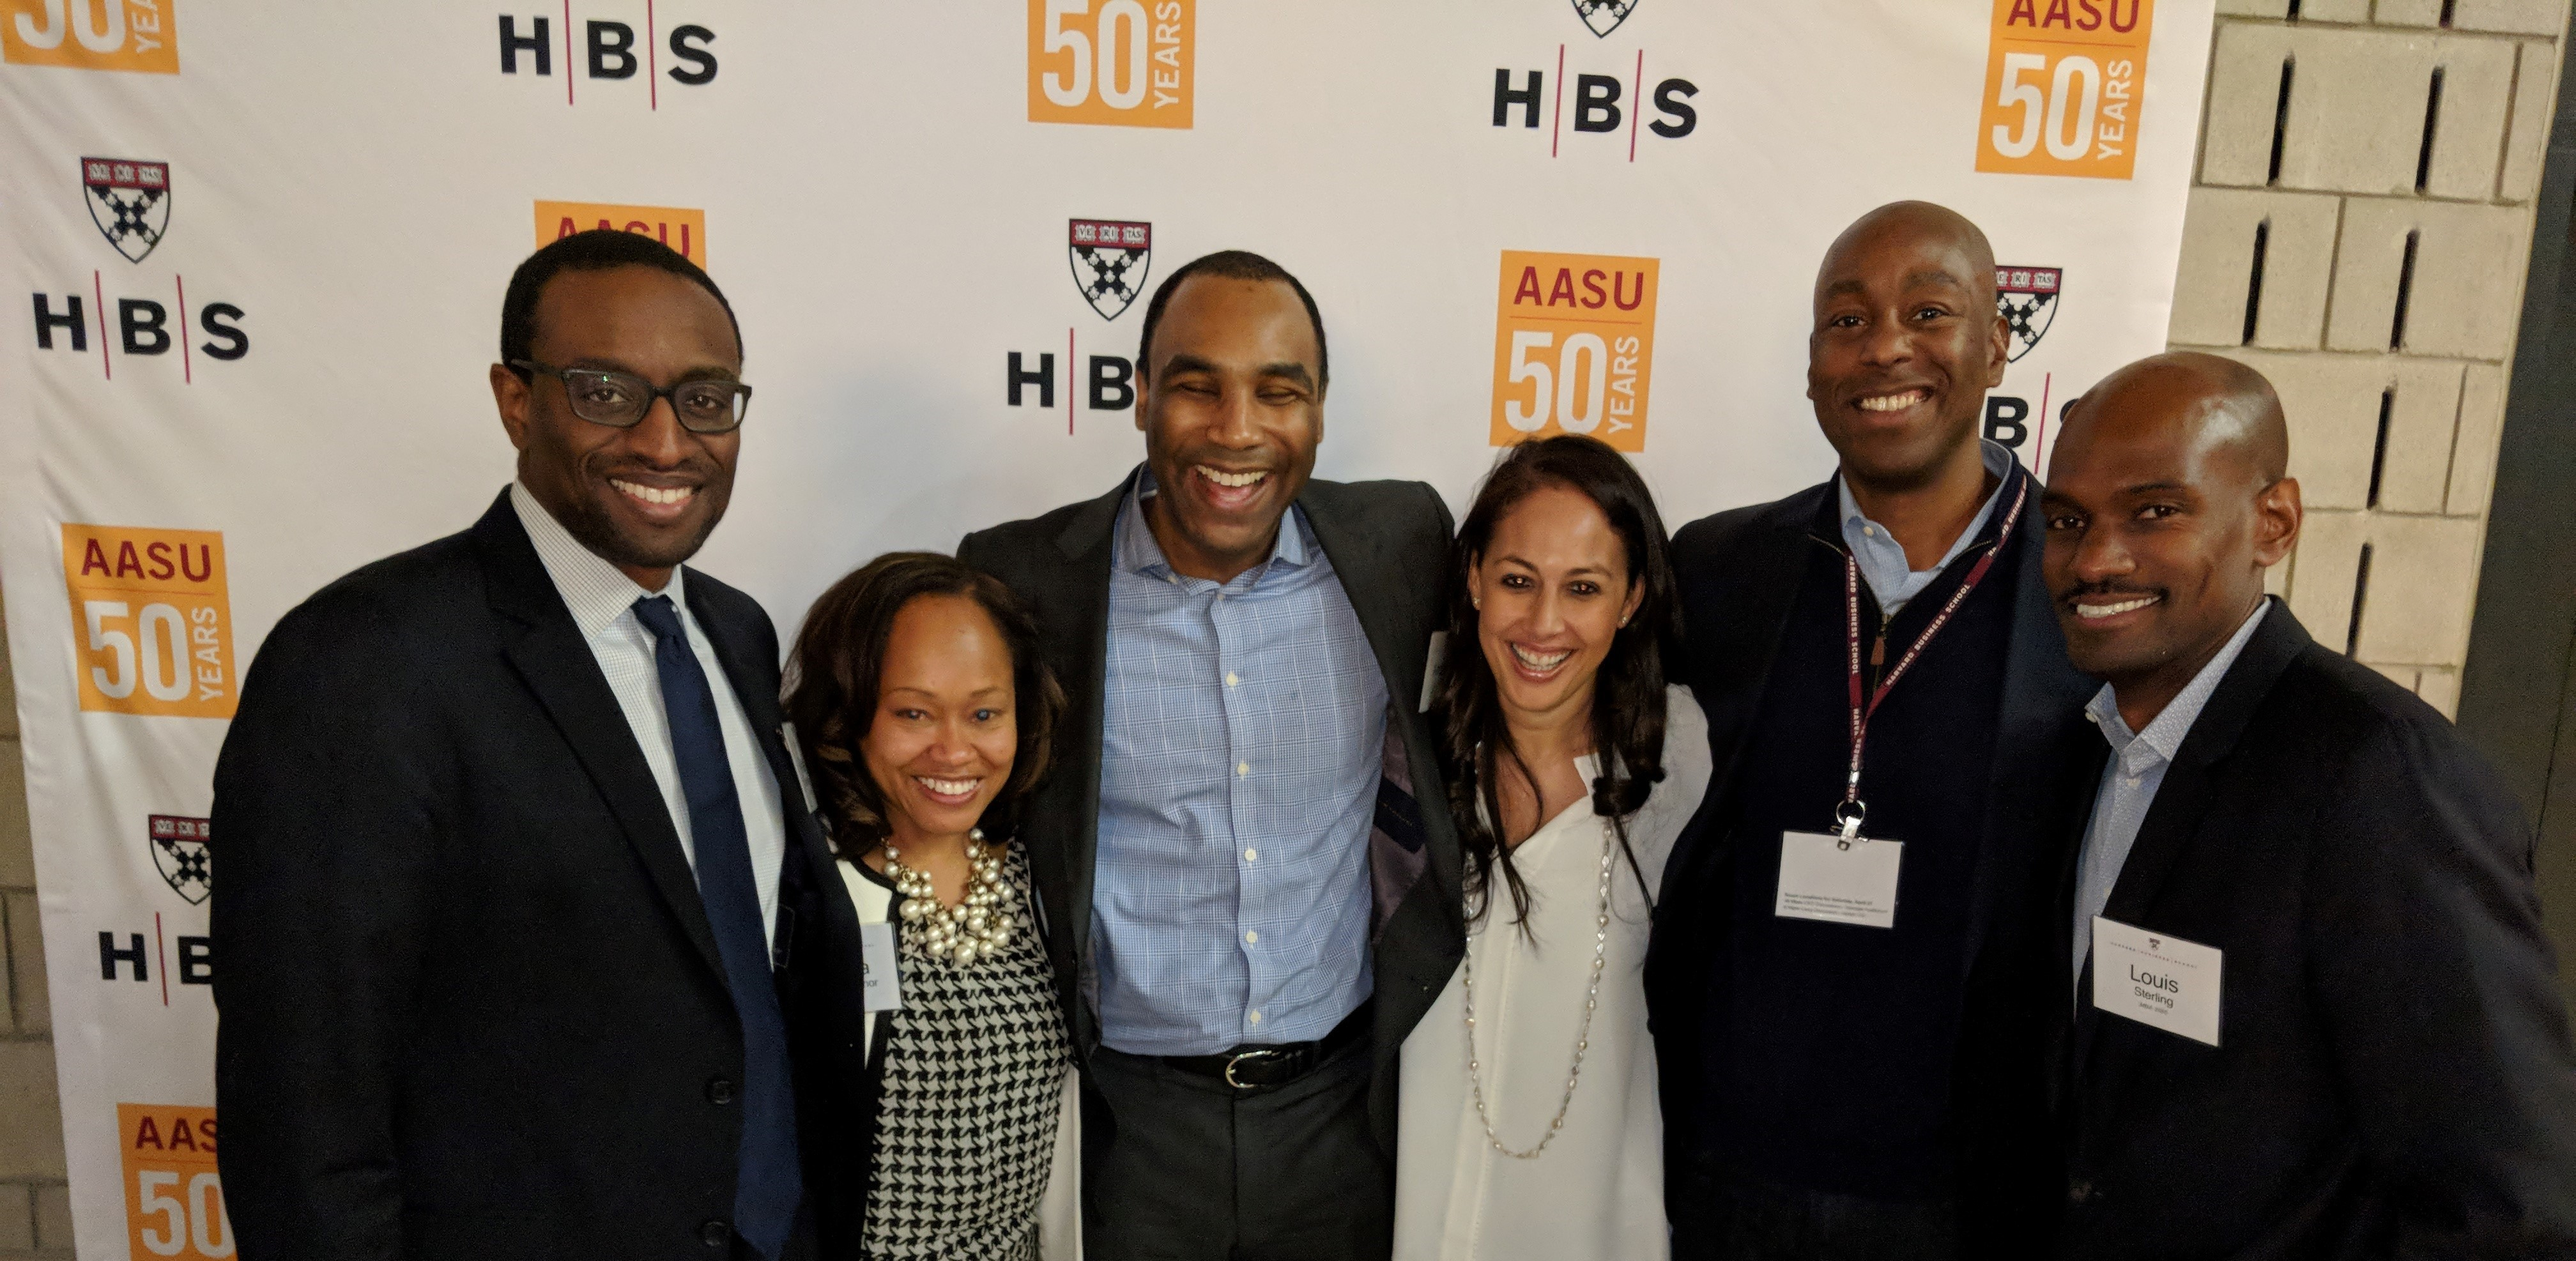 Reflecting on AASU50: Advancing African American Business Leadership